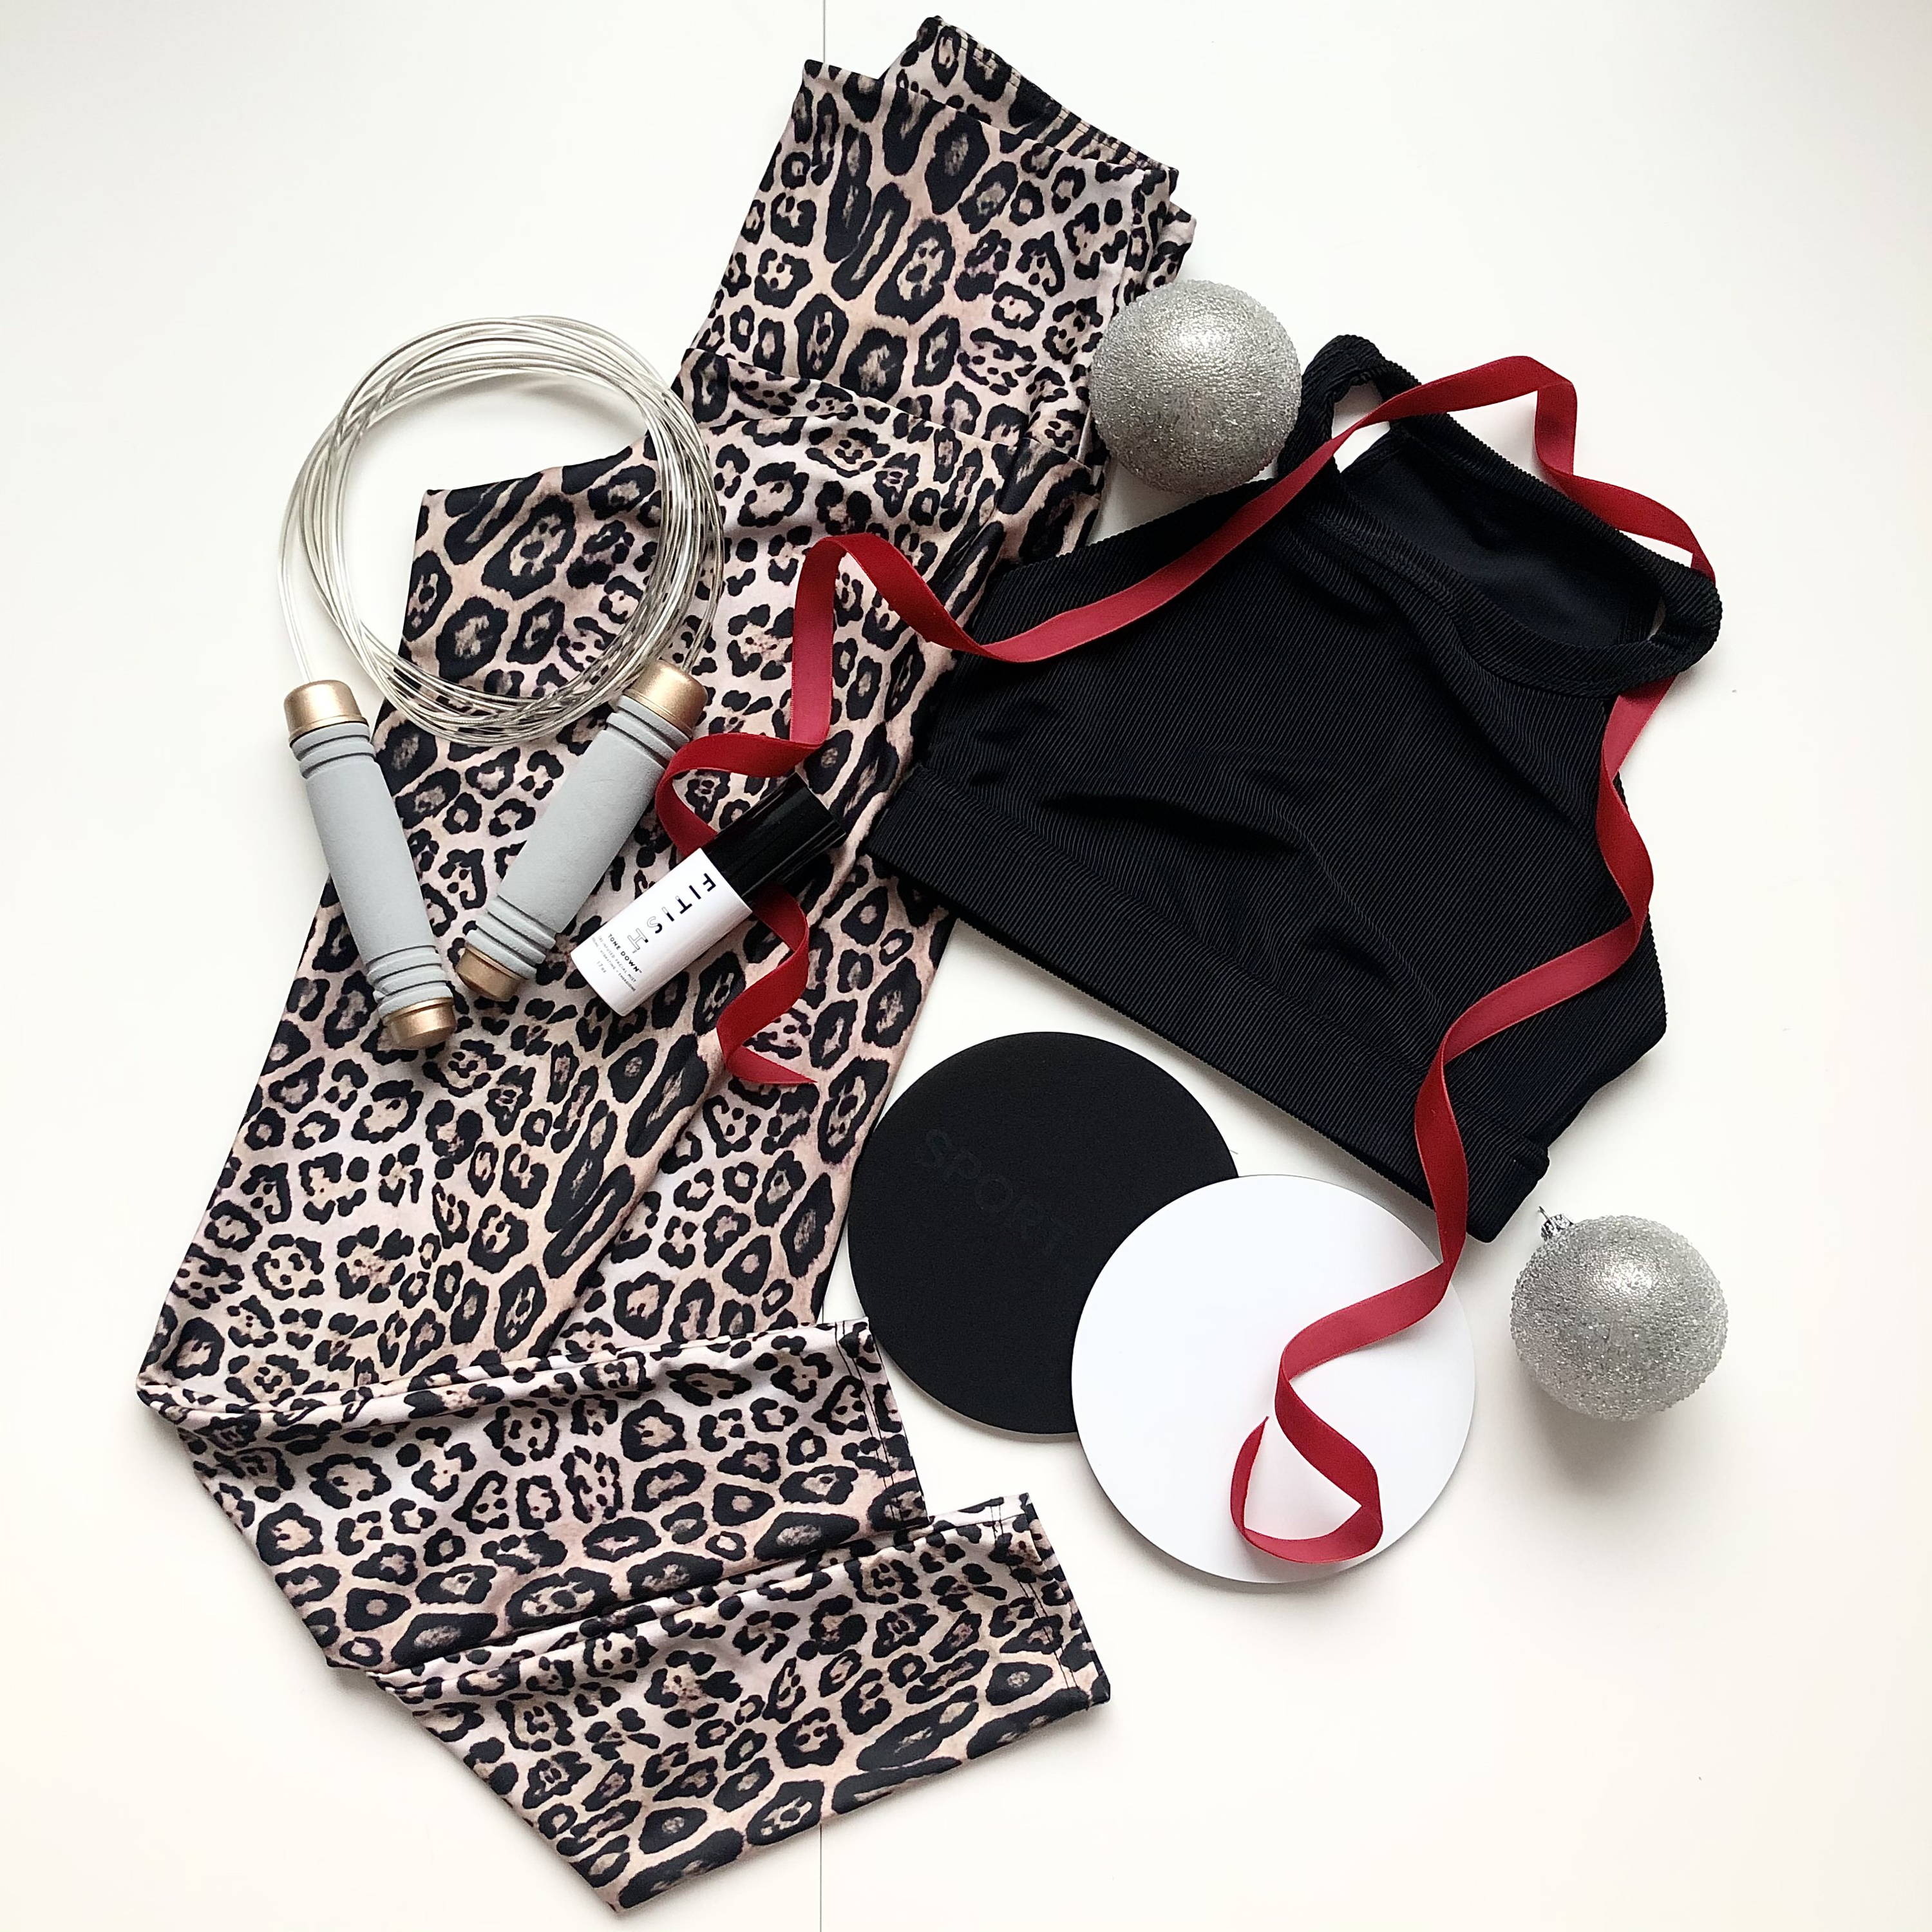 30 Incredible Holiday Gifts to Give the Fit Women in your Life